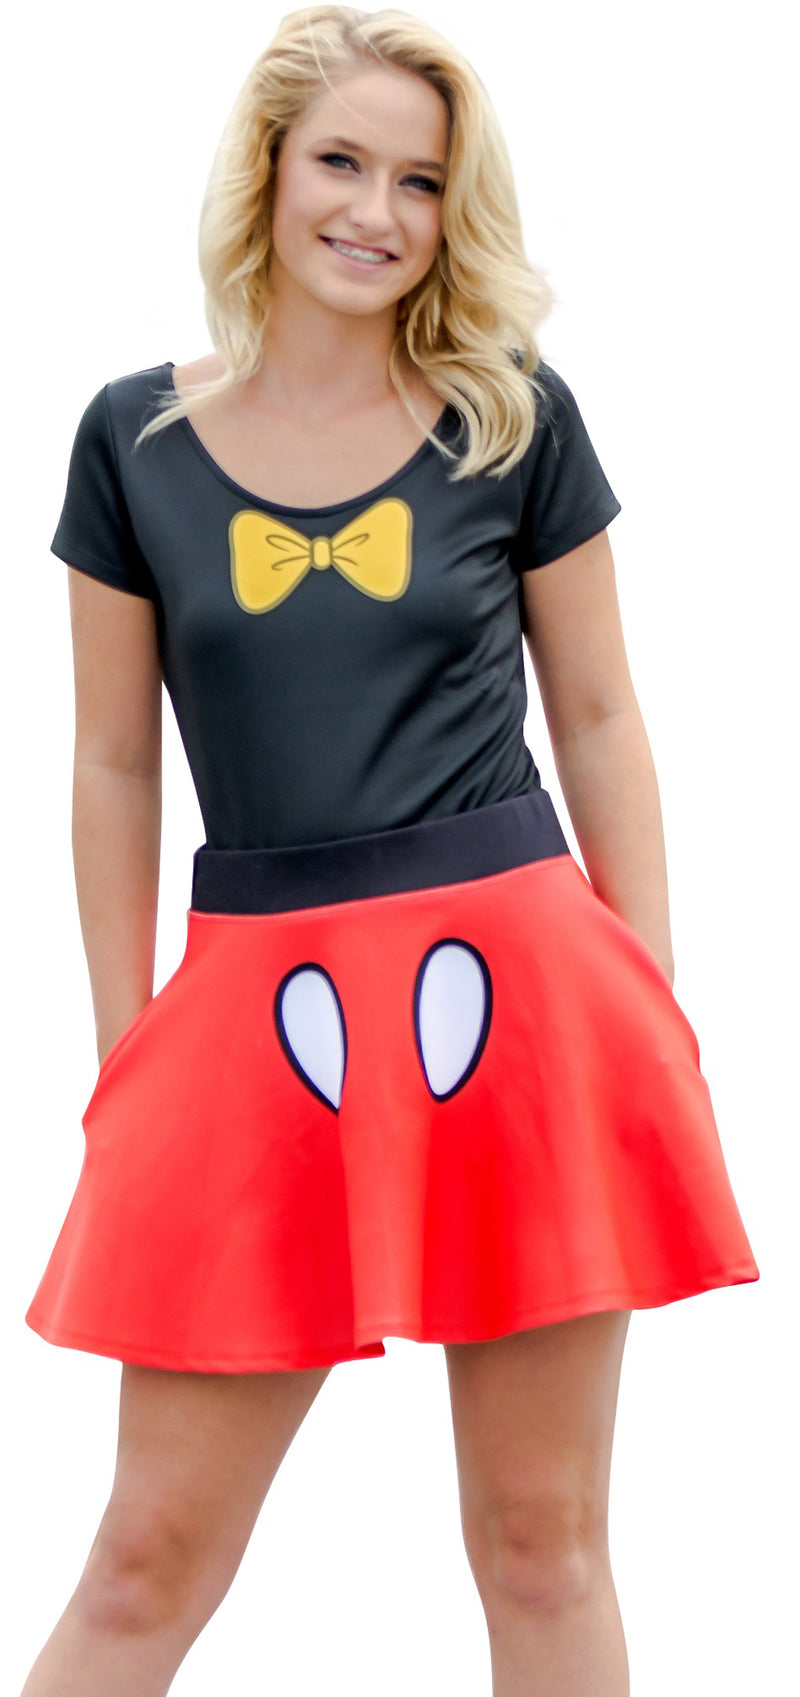 Minnie Mouse Bodysuit and Skirt Costume Set